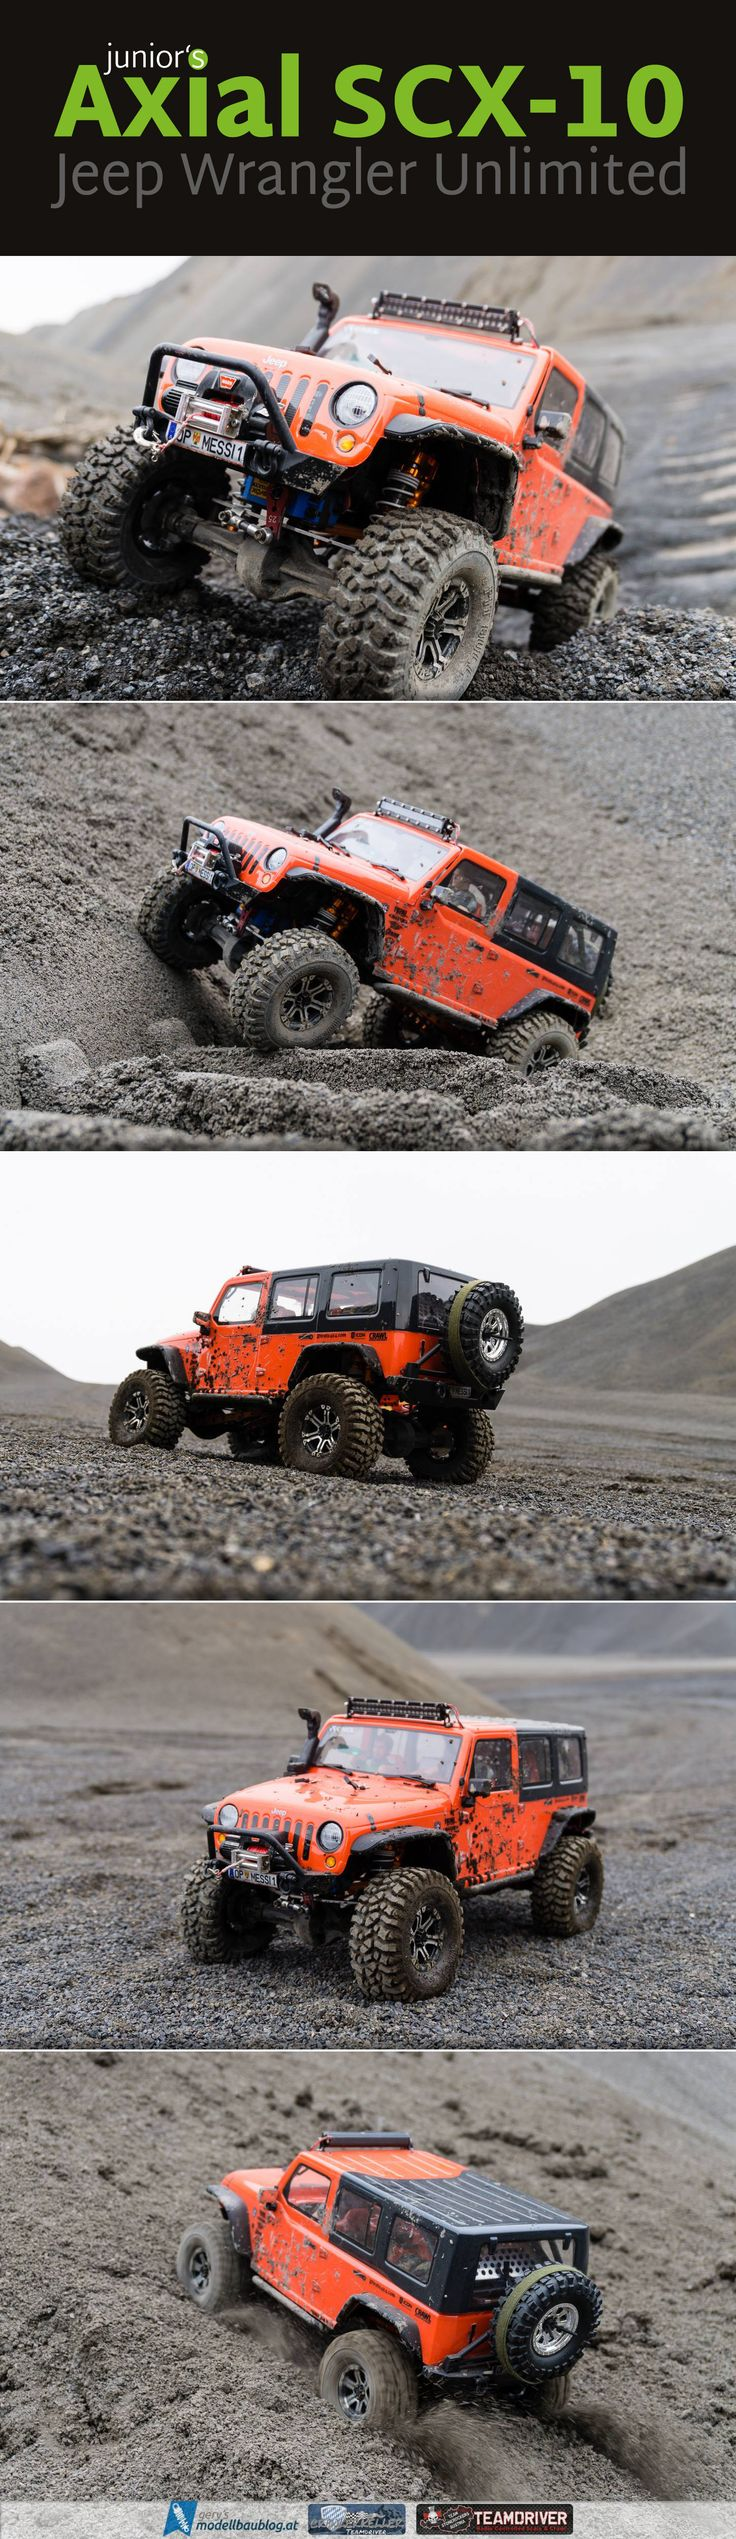 "Junior's Axial SCX-10 ""Jeep Wrangler Unlimited Rubicon"" @axialrc #scx10 #offroad…"